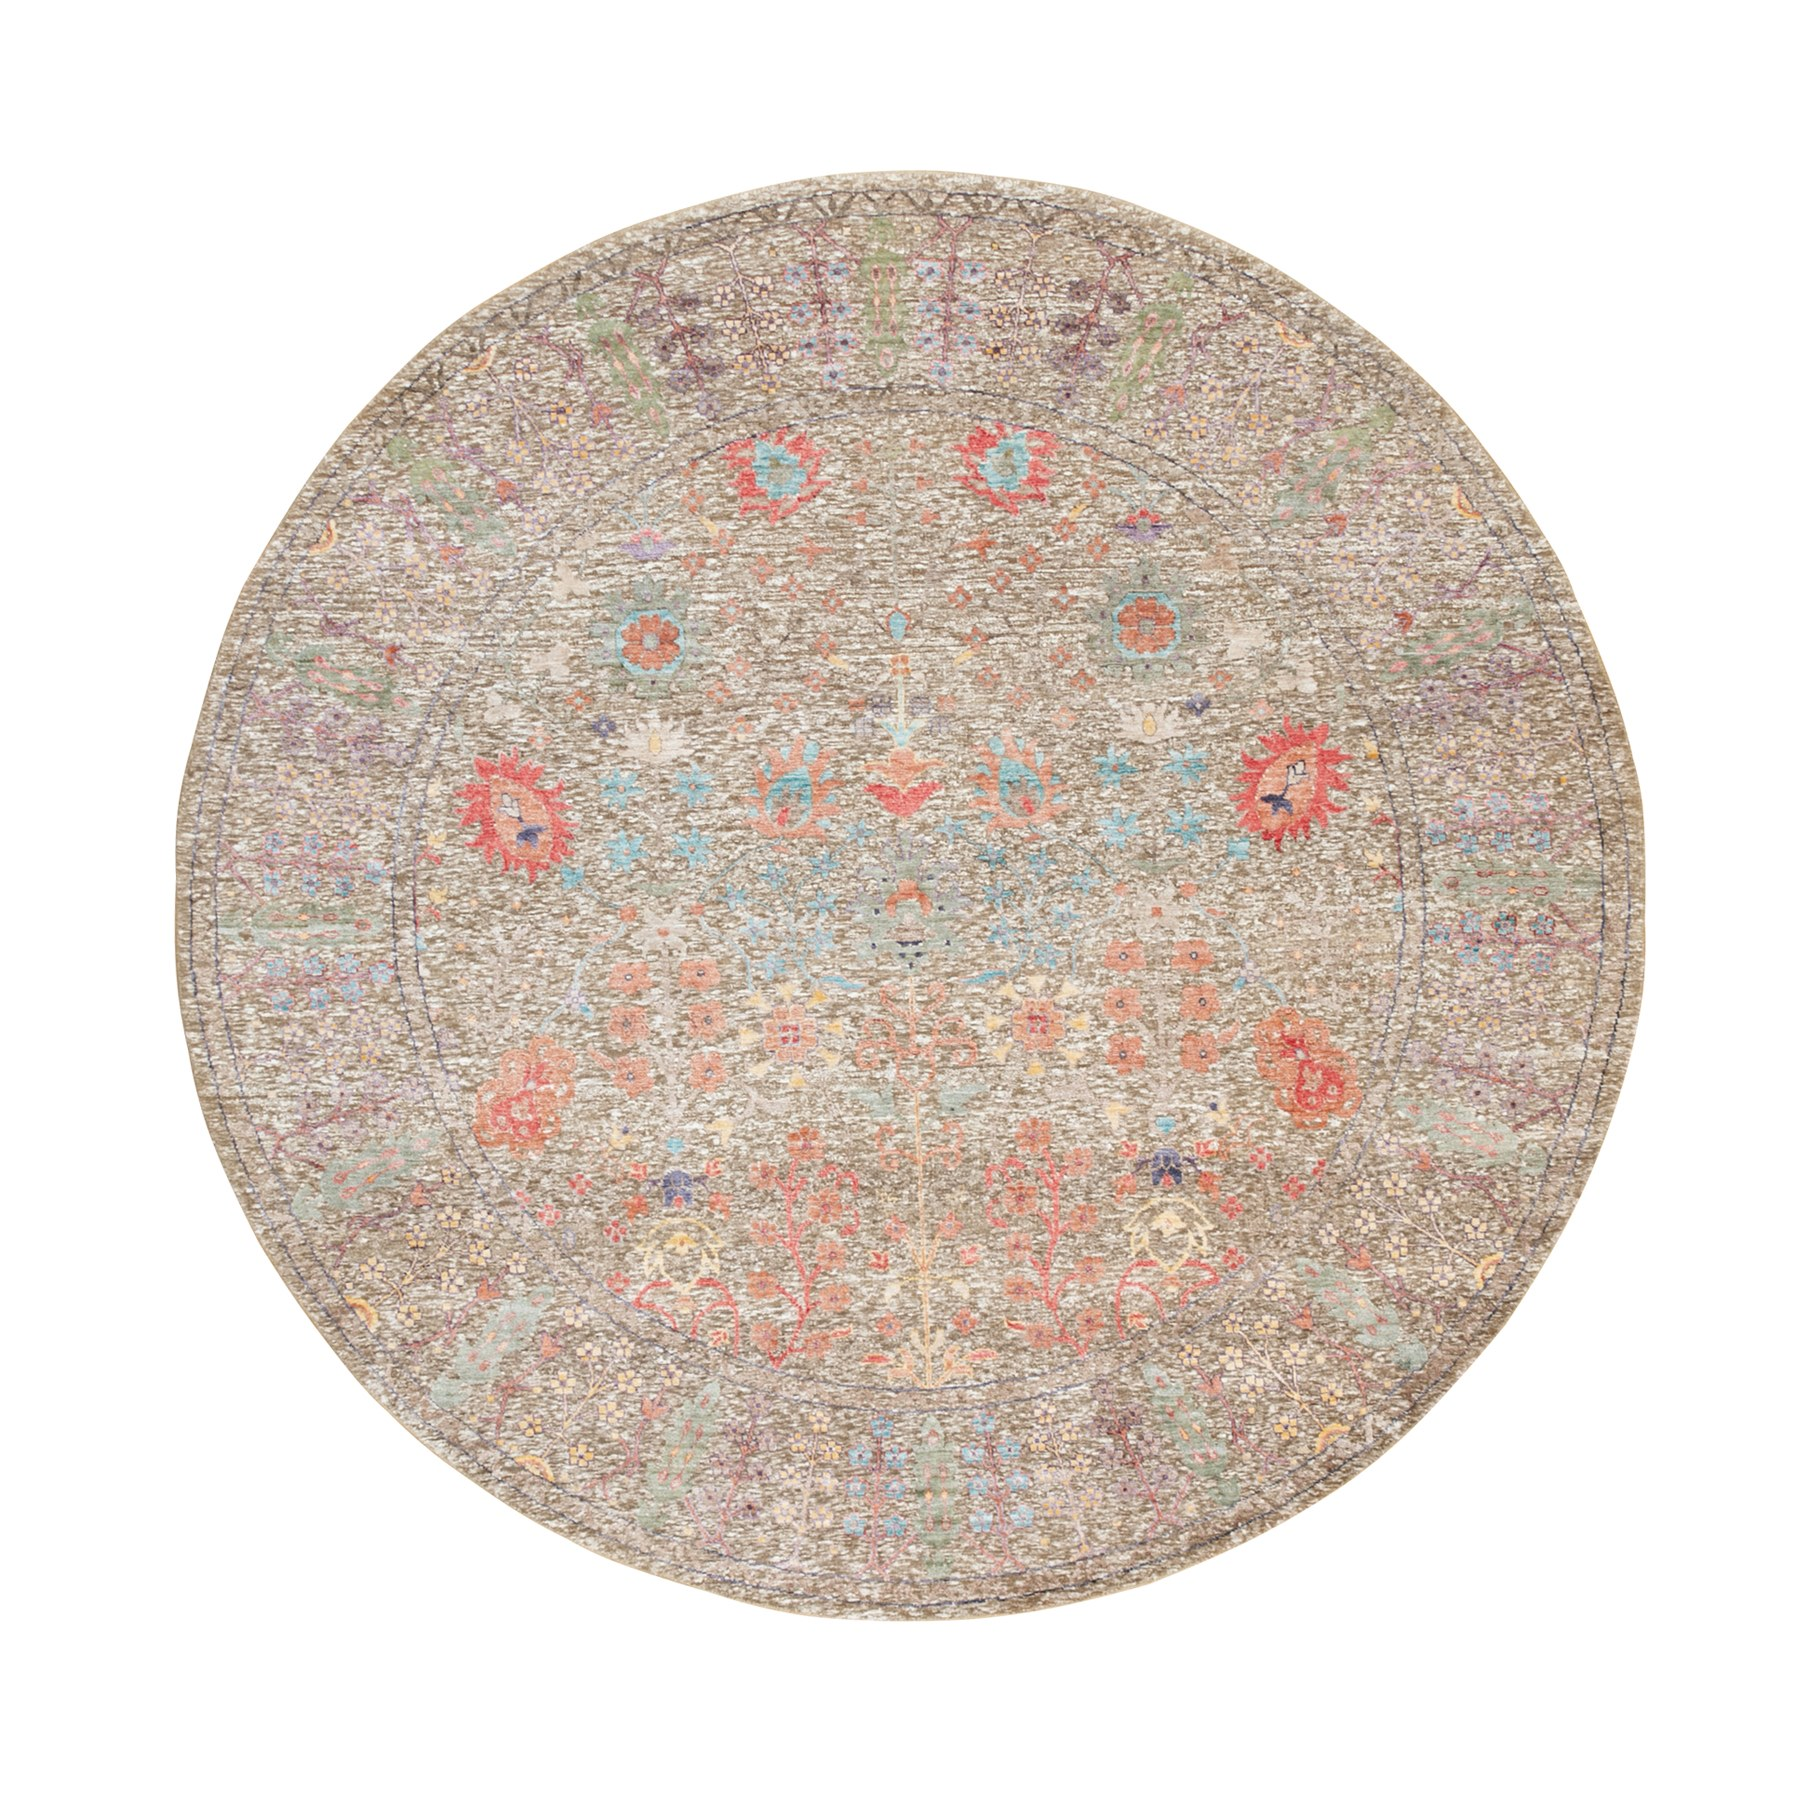 8'x8' Hand Knotted Taupe Silk With Textured Wool Directional Vase Design Oriental Round Rug